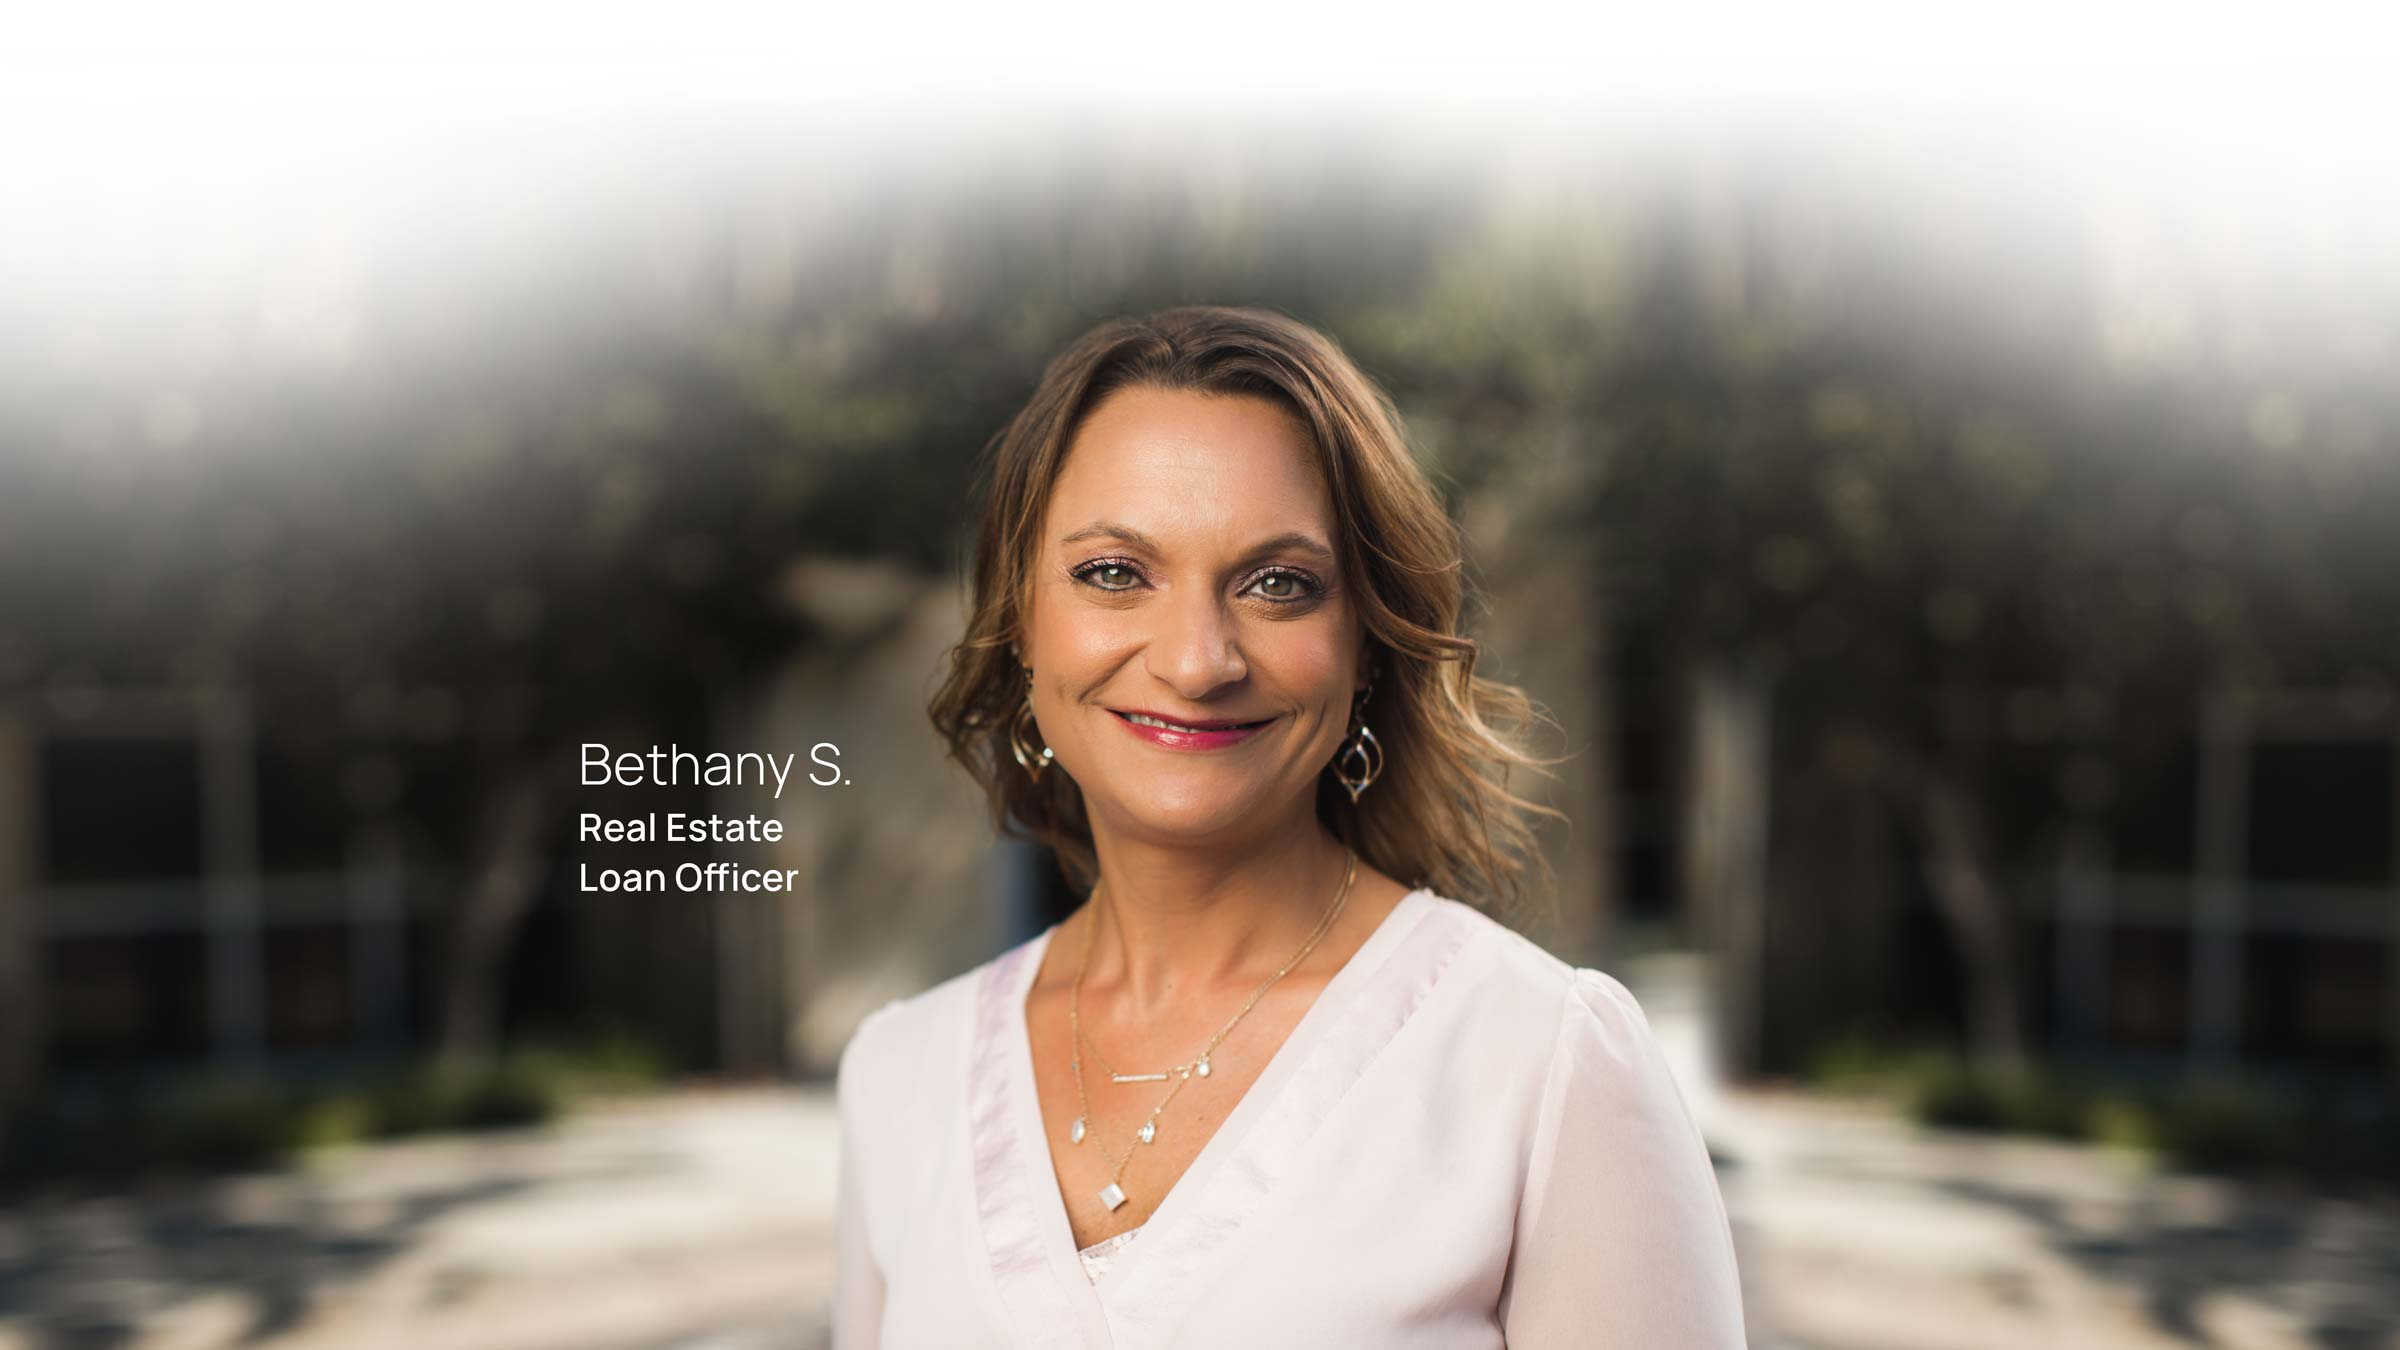 Bethany S. Real Estate Loan Officer